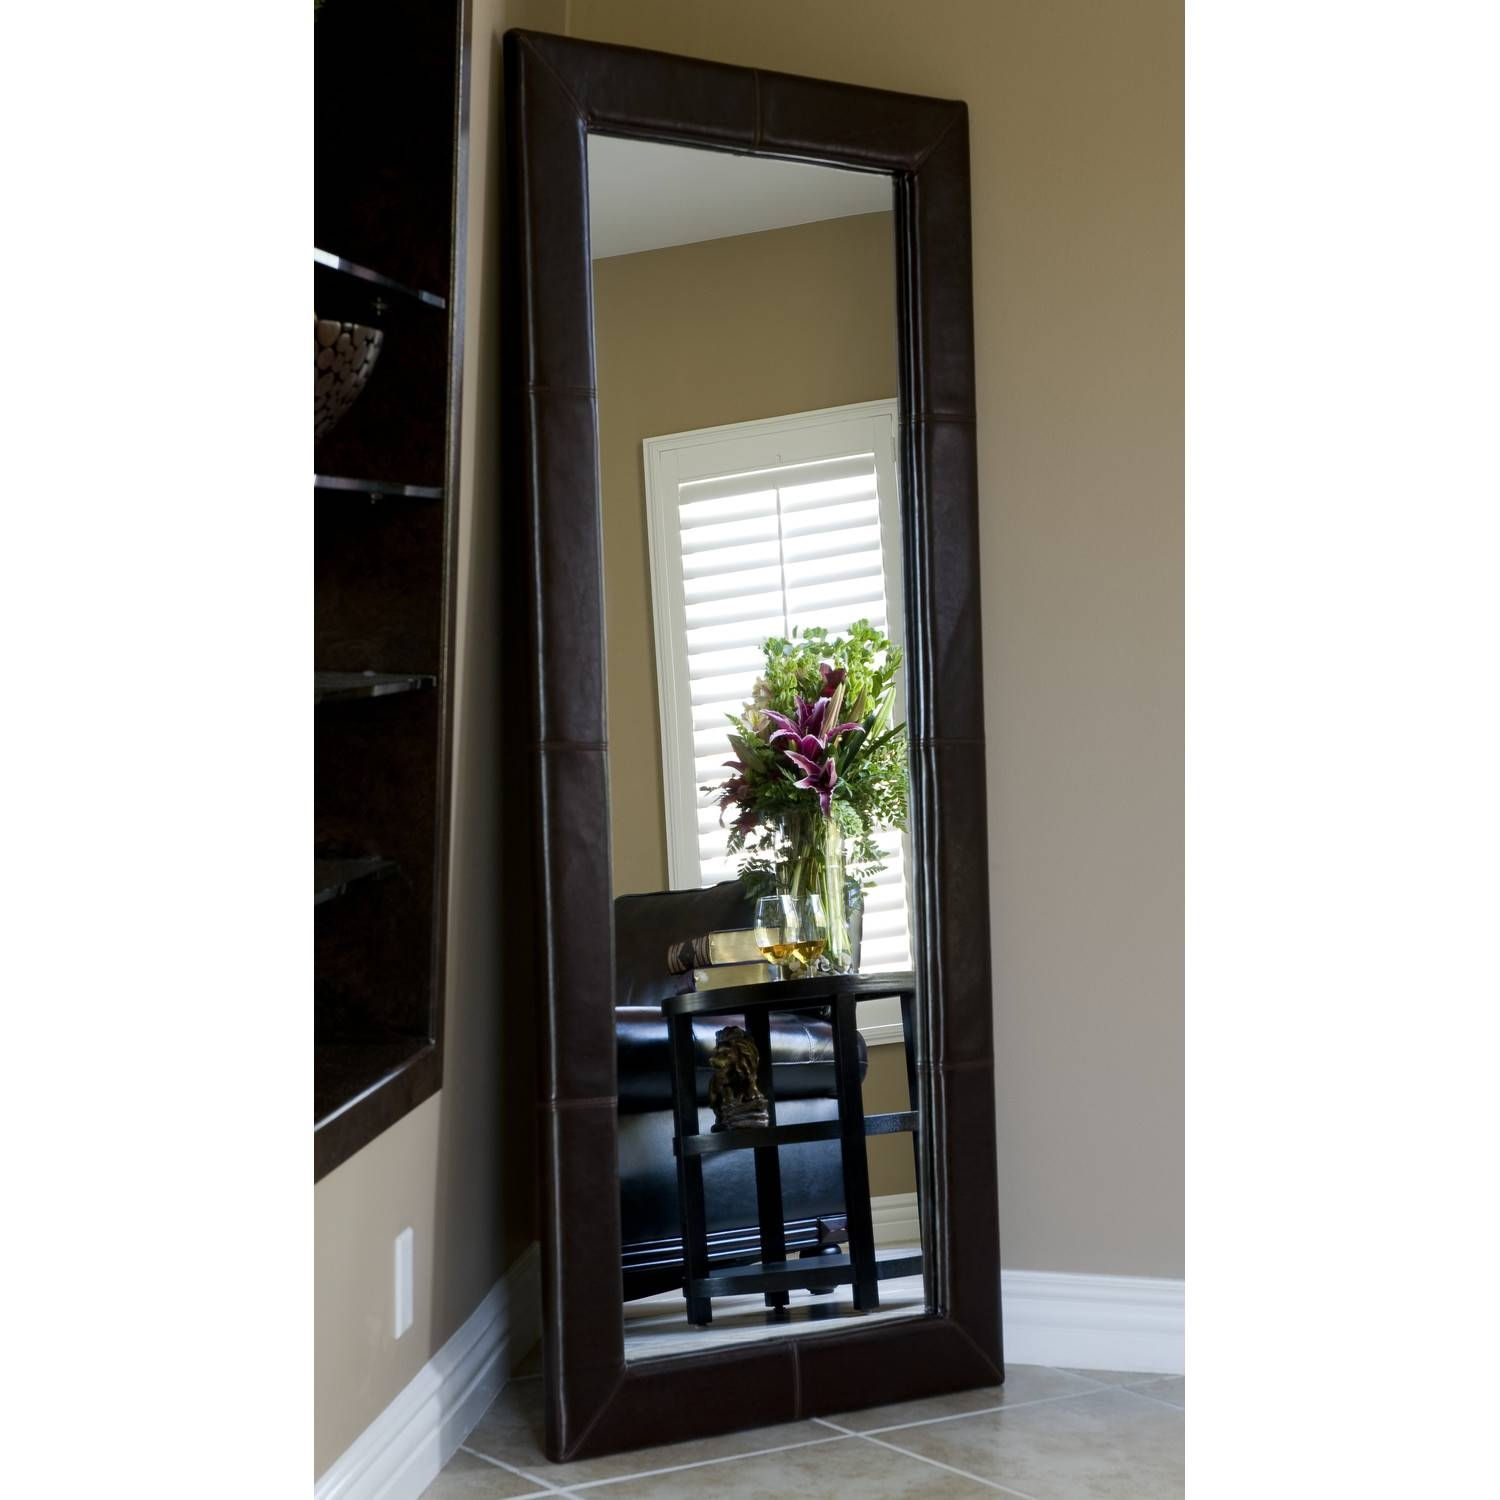 Furniture: Mesmerizing Oversized Floor Mirror For Home Furniture within Black Leather Framed Mirrors (Image 1 of 15)